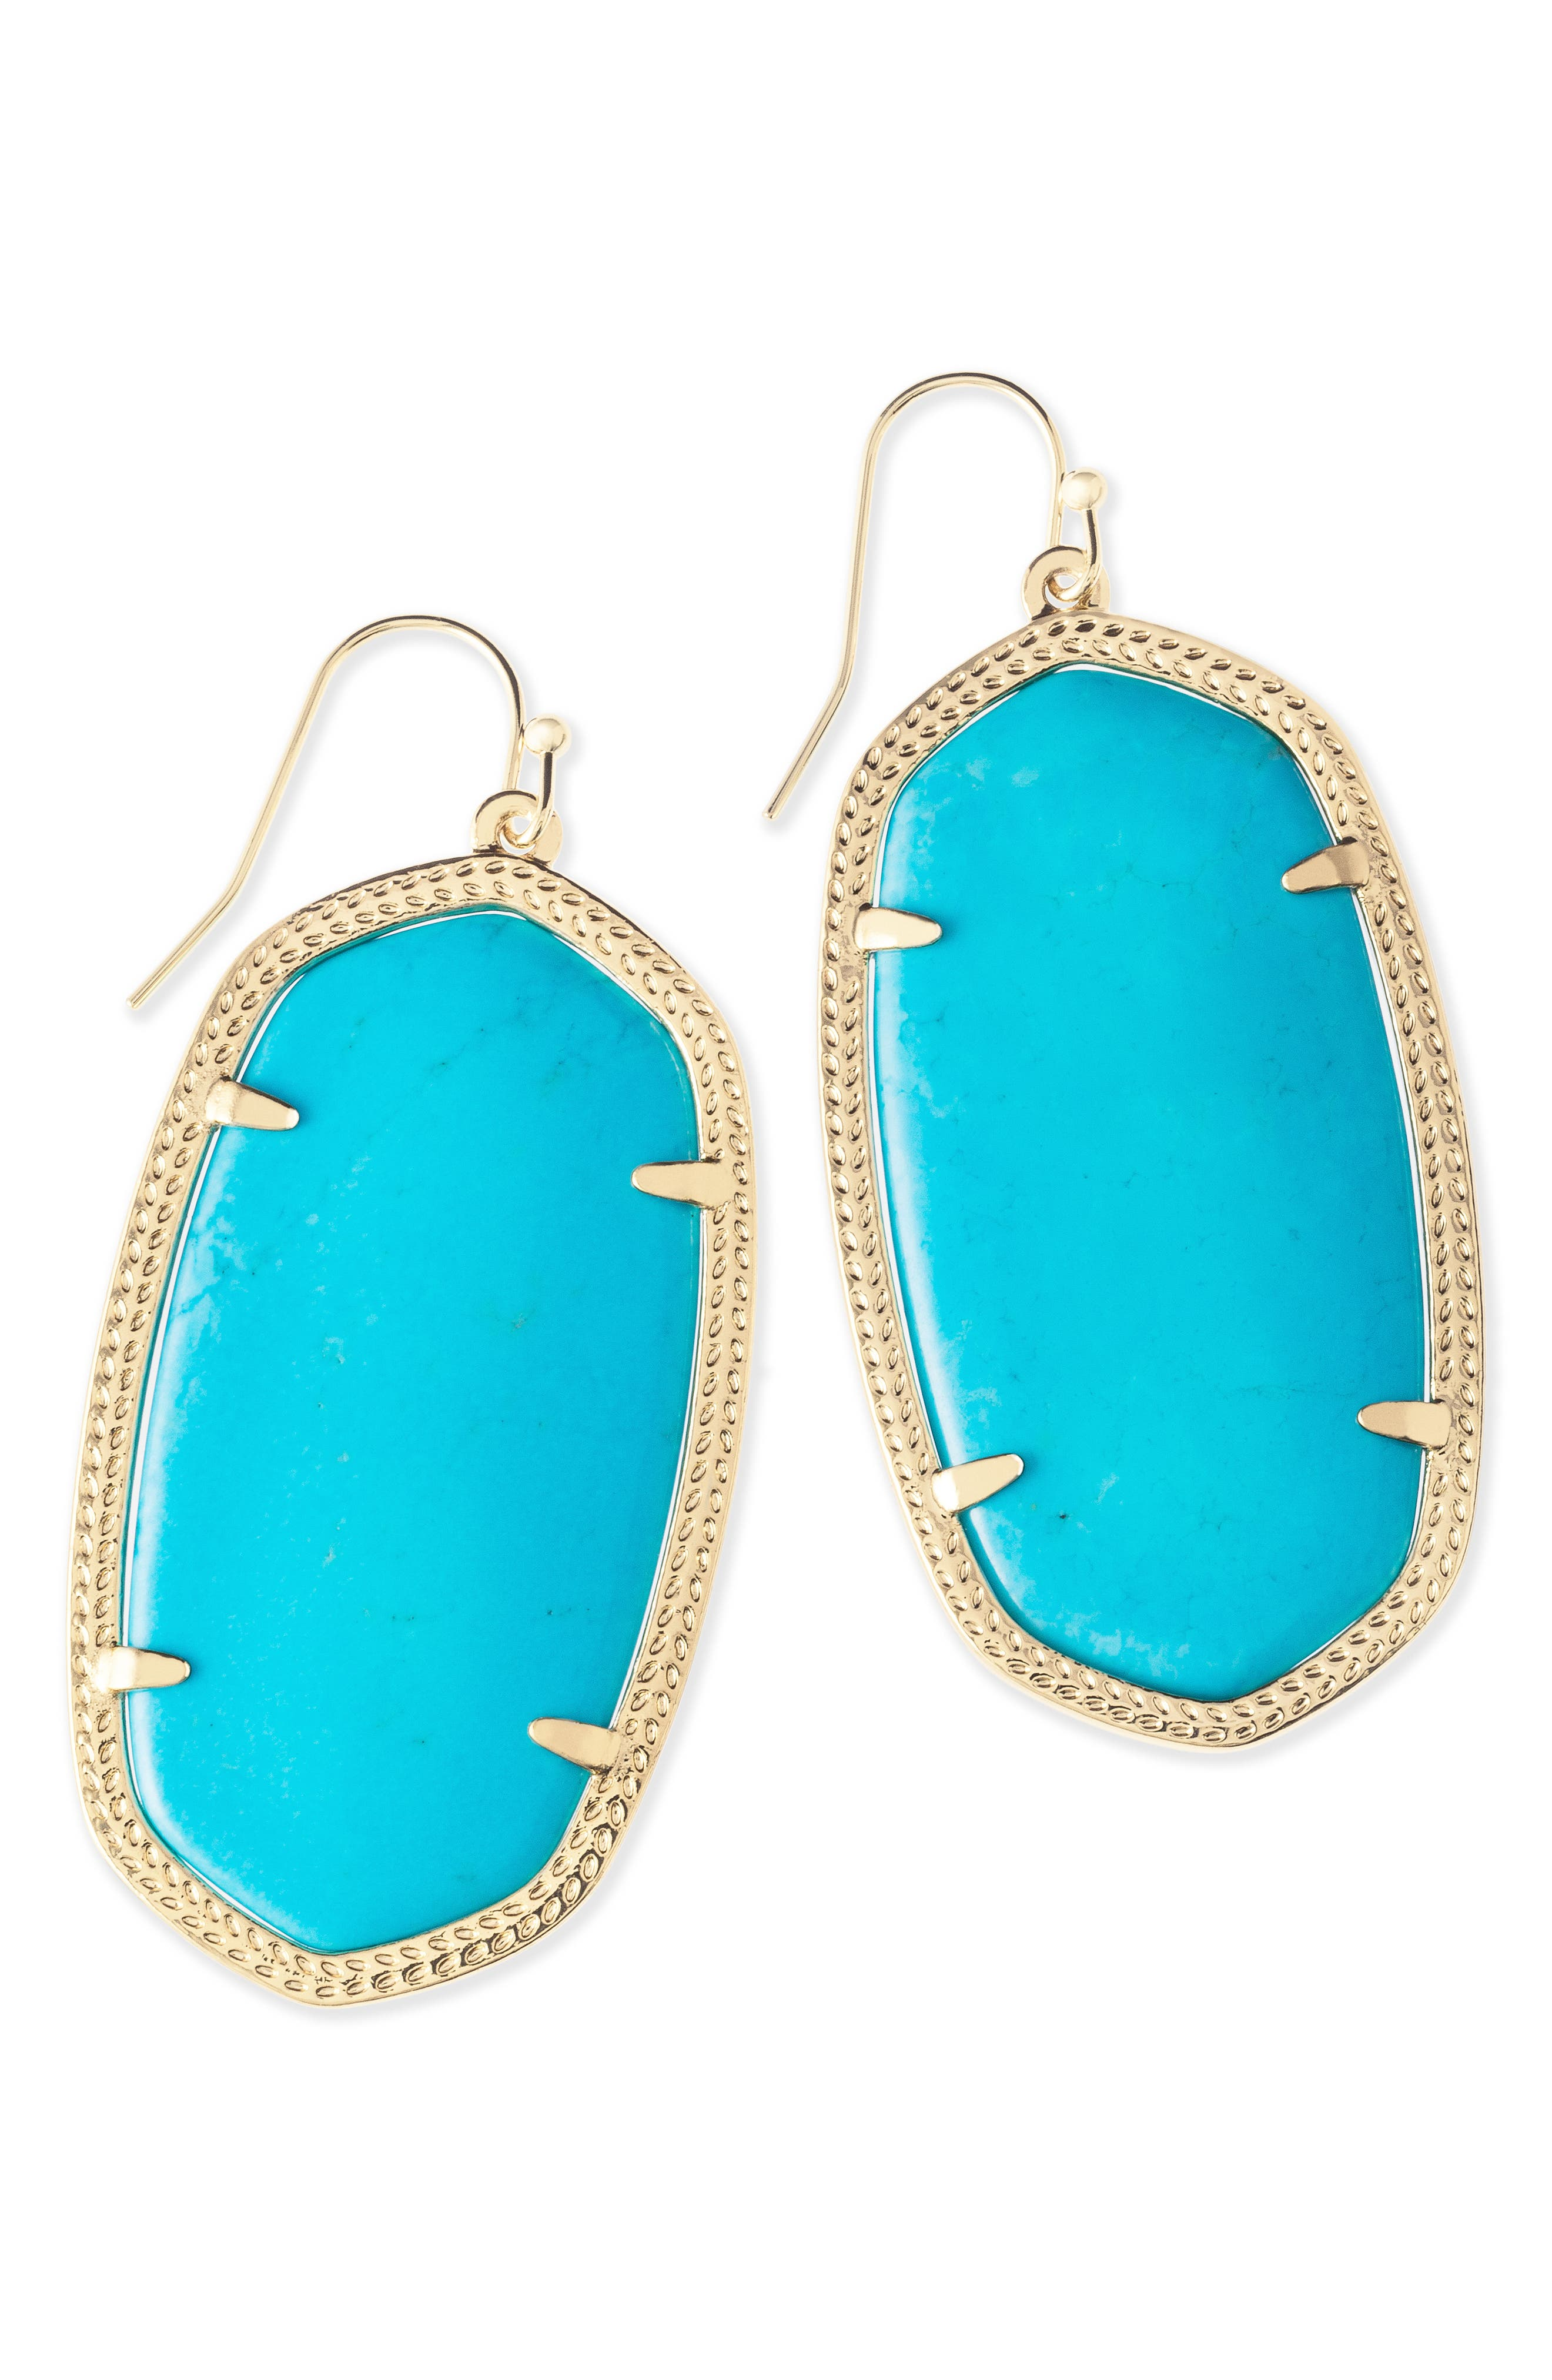 Danielle - Large Oval Statement Earrings,                             Alternate thumbnail 106, color,